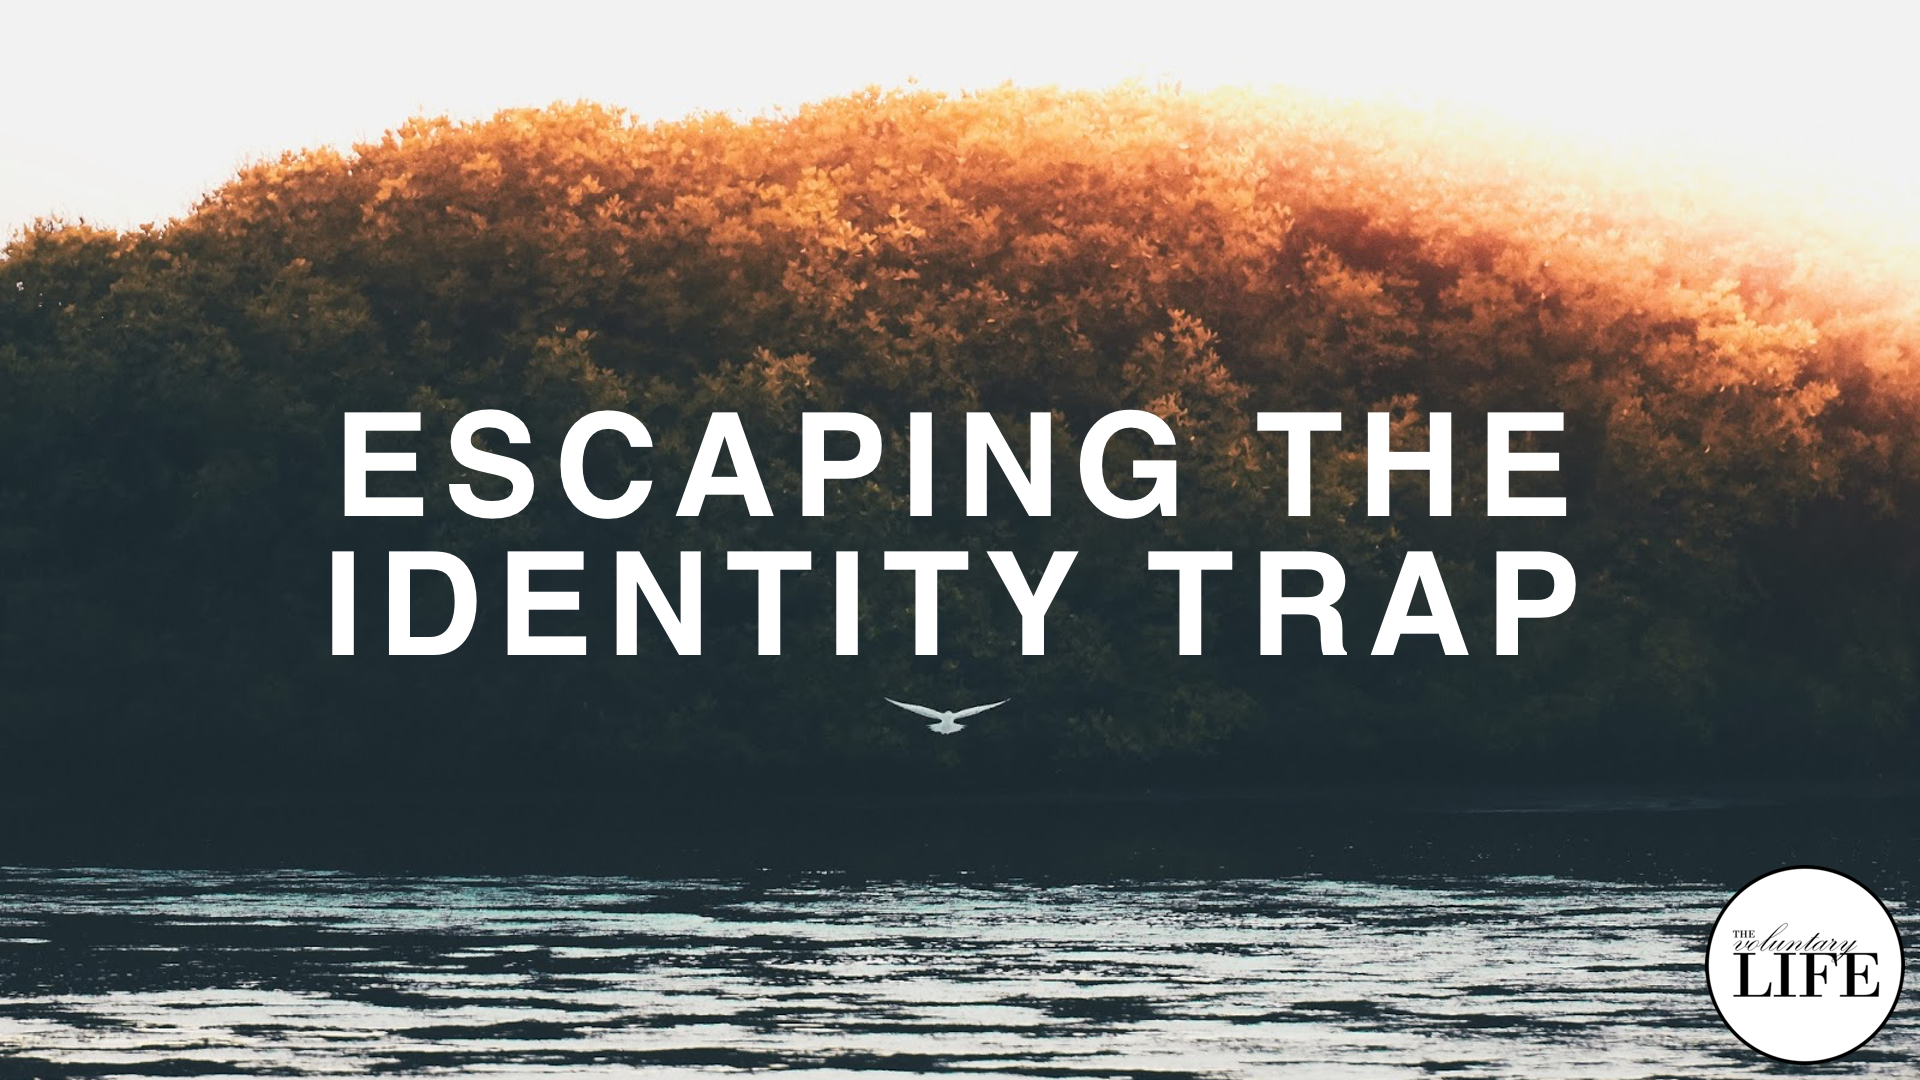 290 Escaping The Identity Trap